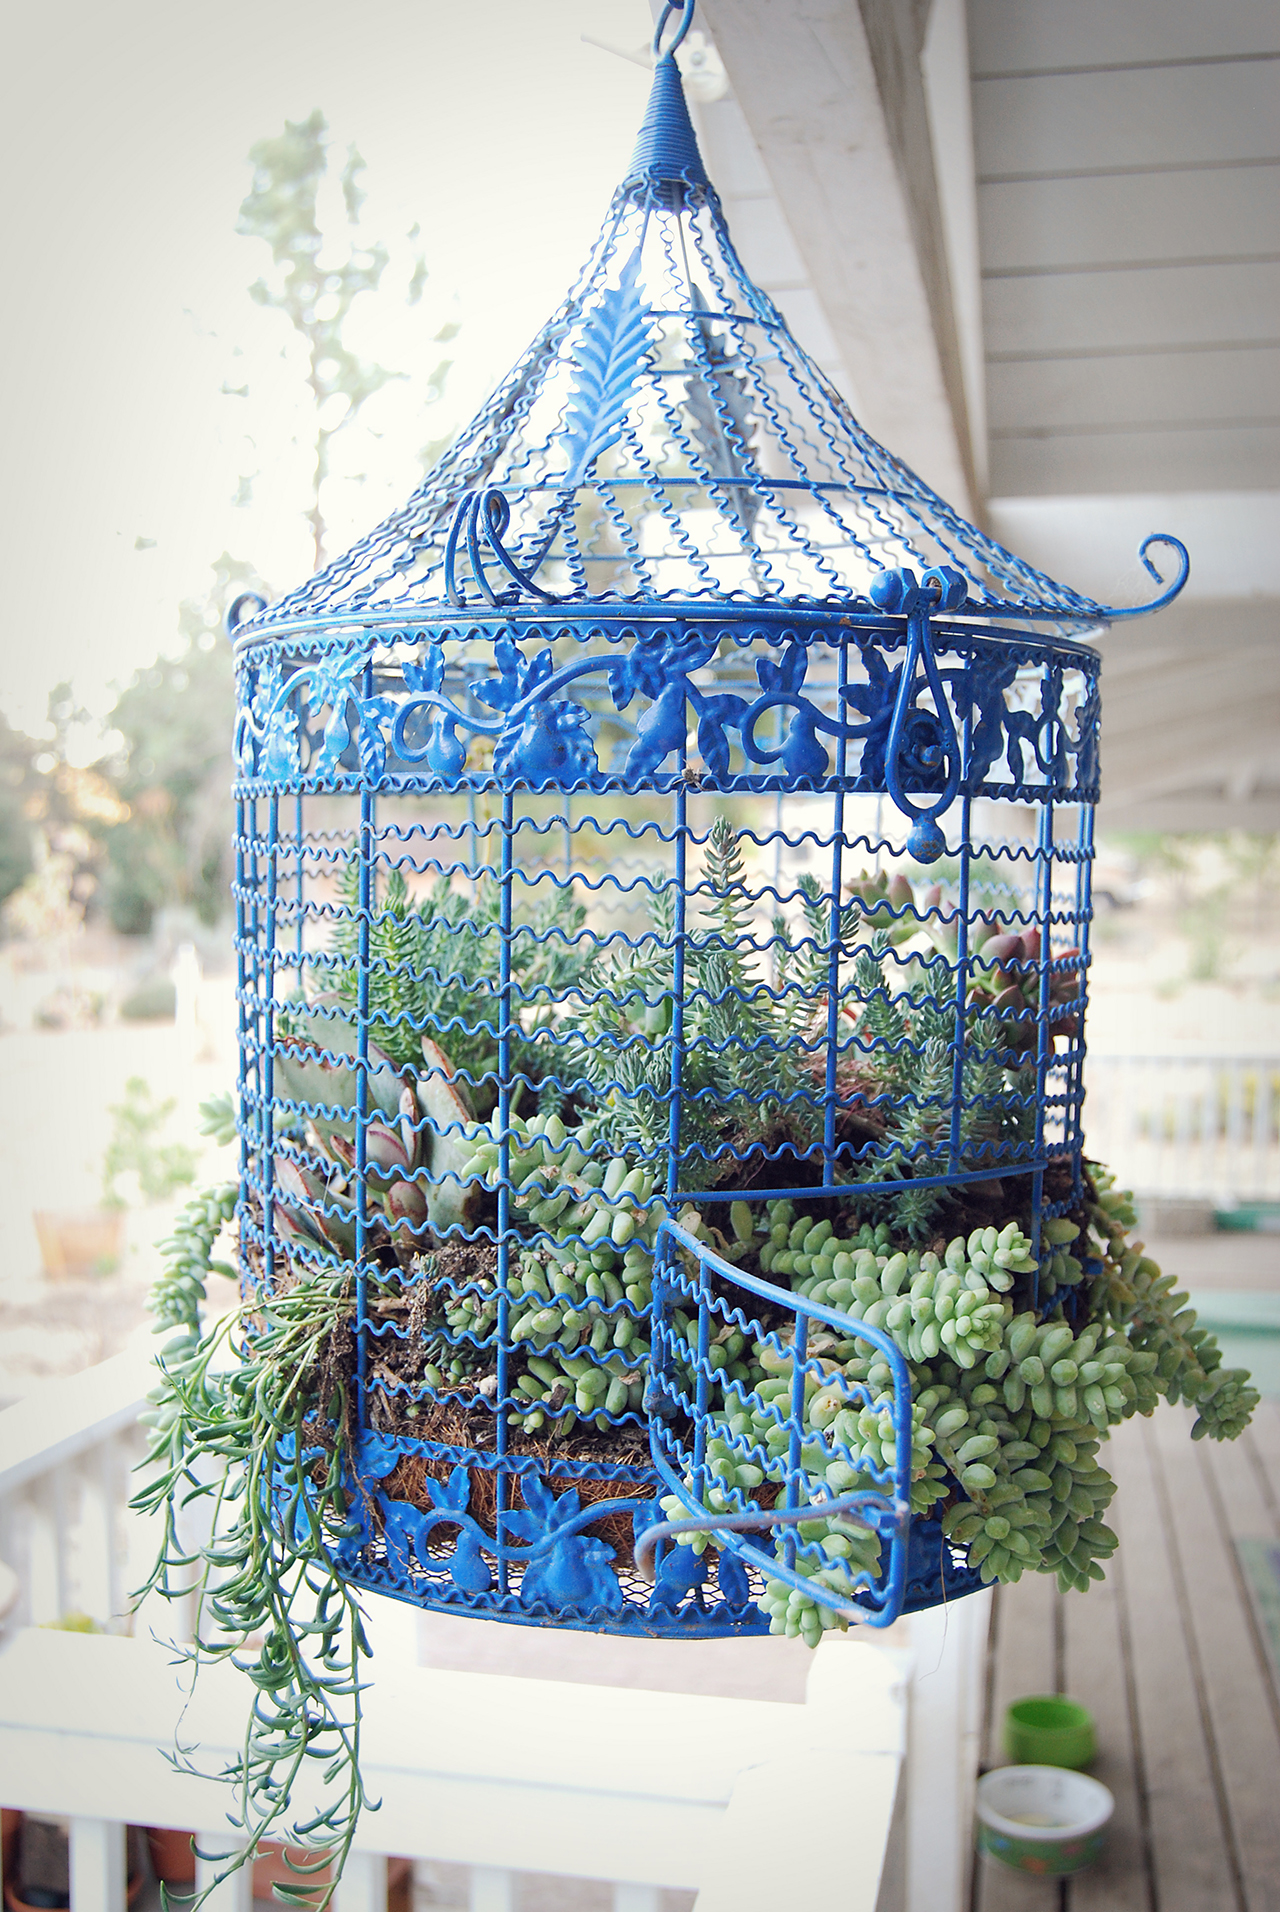 20 Best Decoration Ideas with Birdcage planters in 2020 on Birds Backyard Landscapes  id=46116